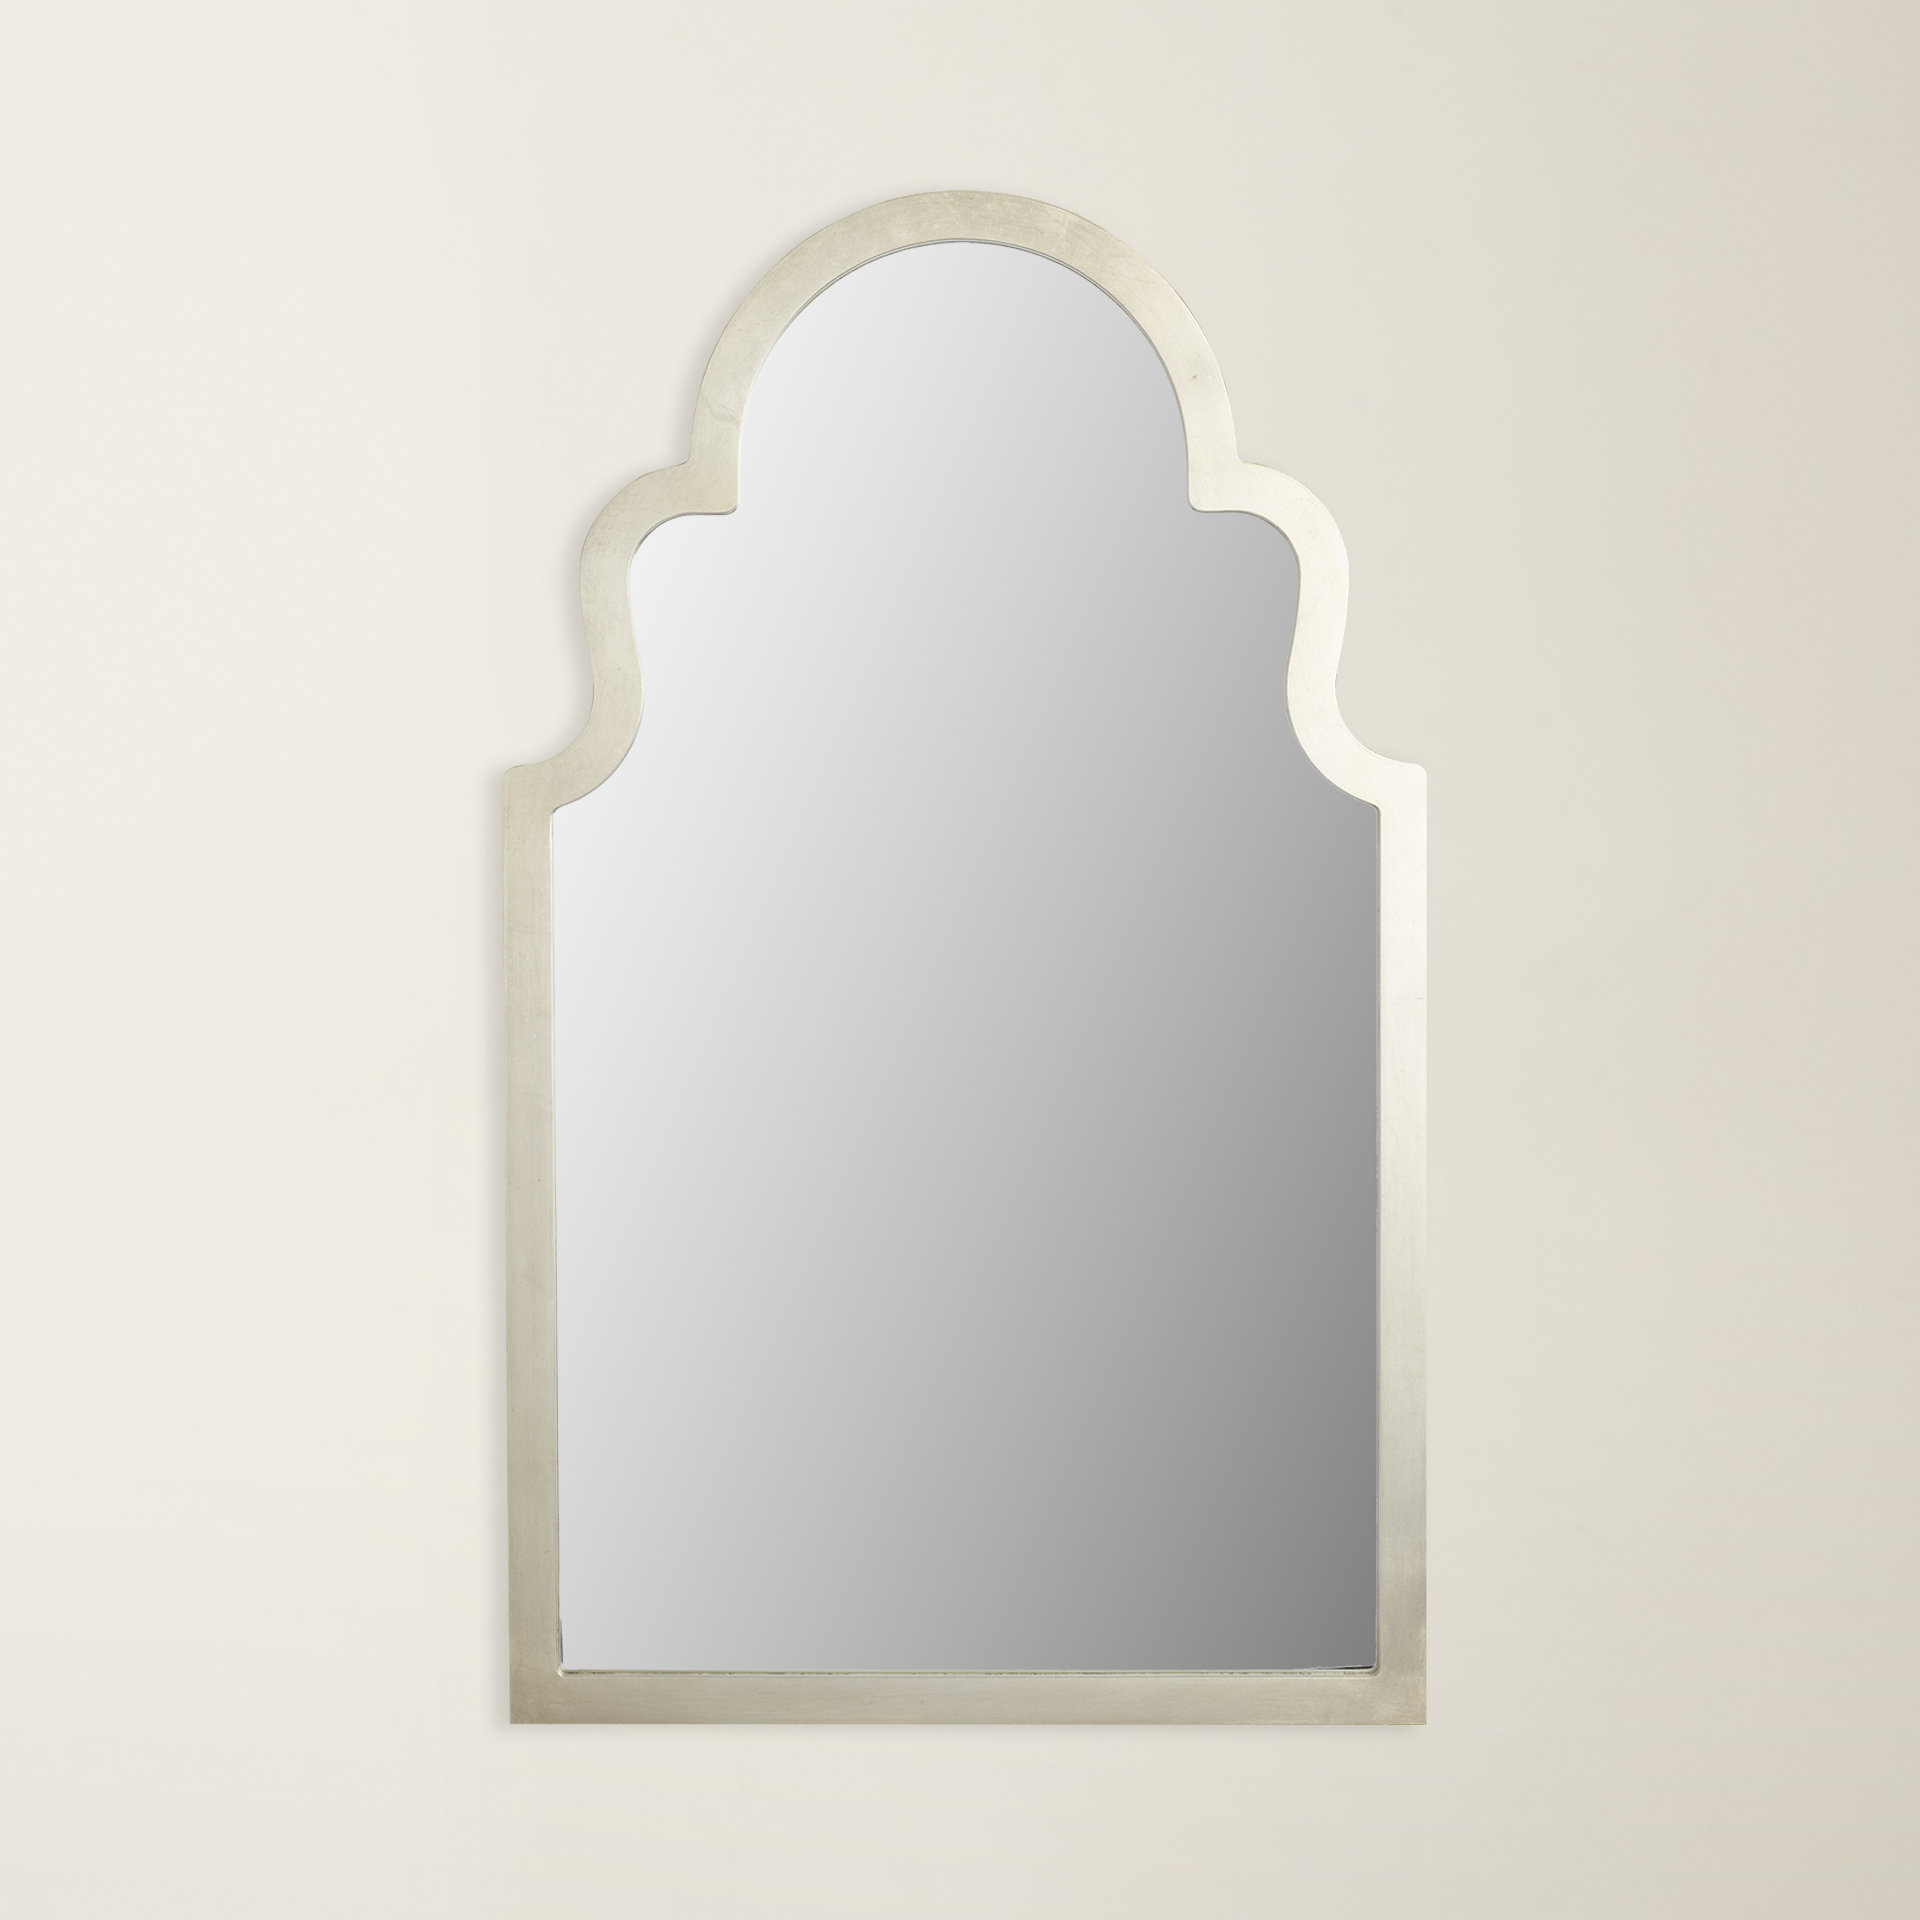 Arch Top Vertical Wall Mirror Regarding Most Popular Fifi Contemporary Arch Wall Mirrors (Gallery 8 of 20)